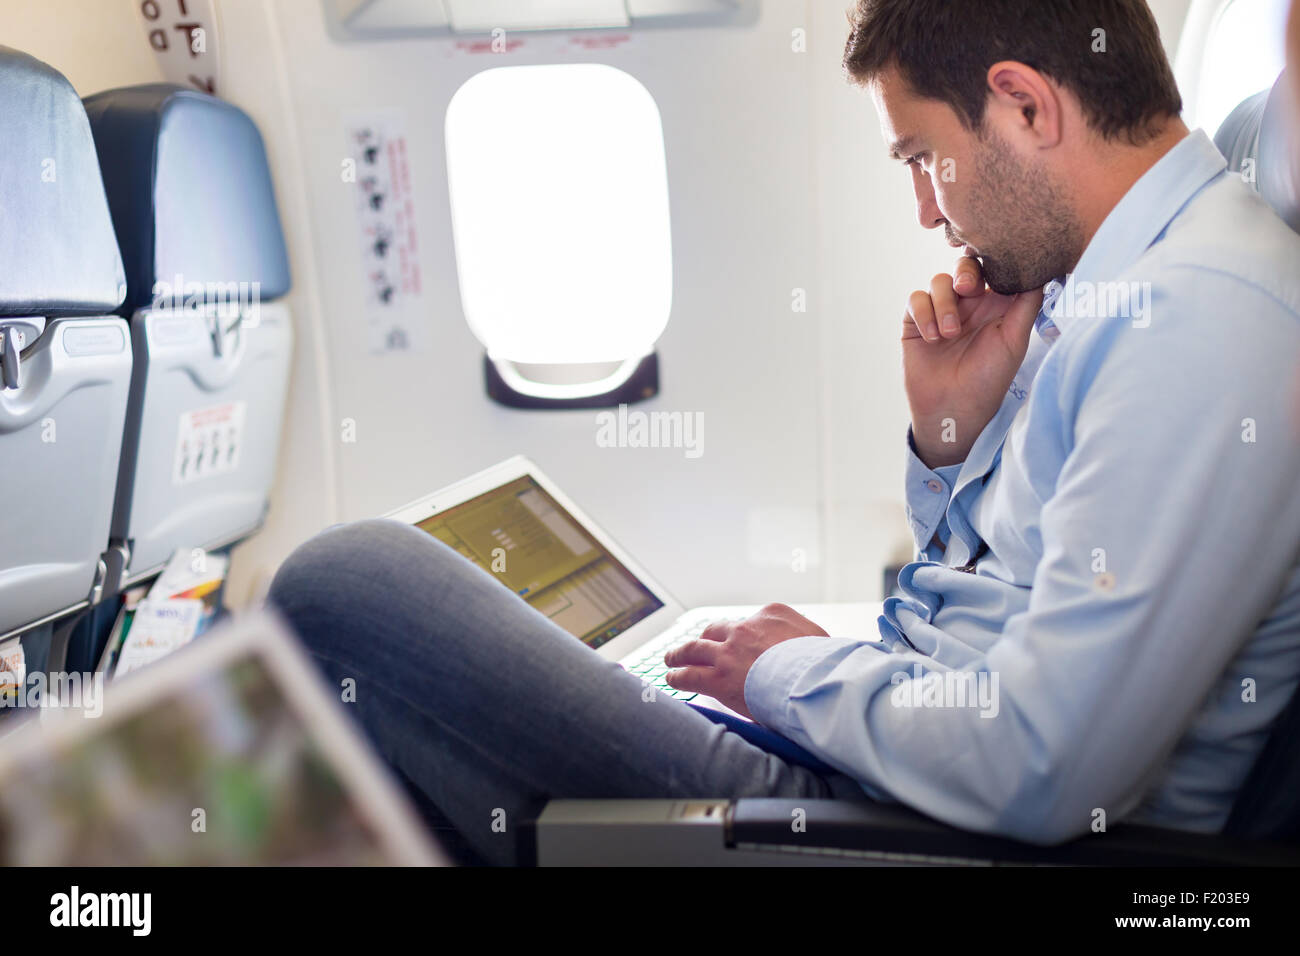 Businessman working with laptop on airplane. - Stock Image